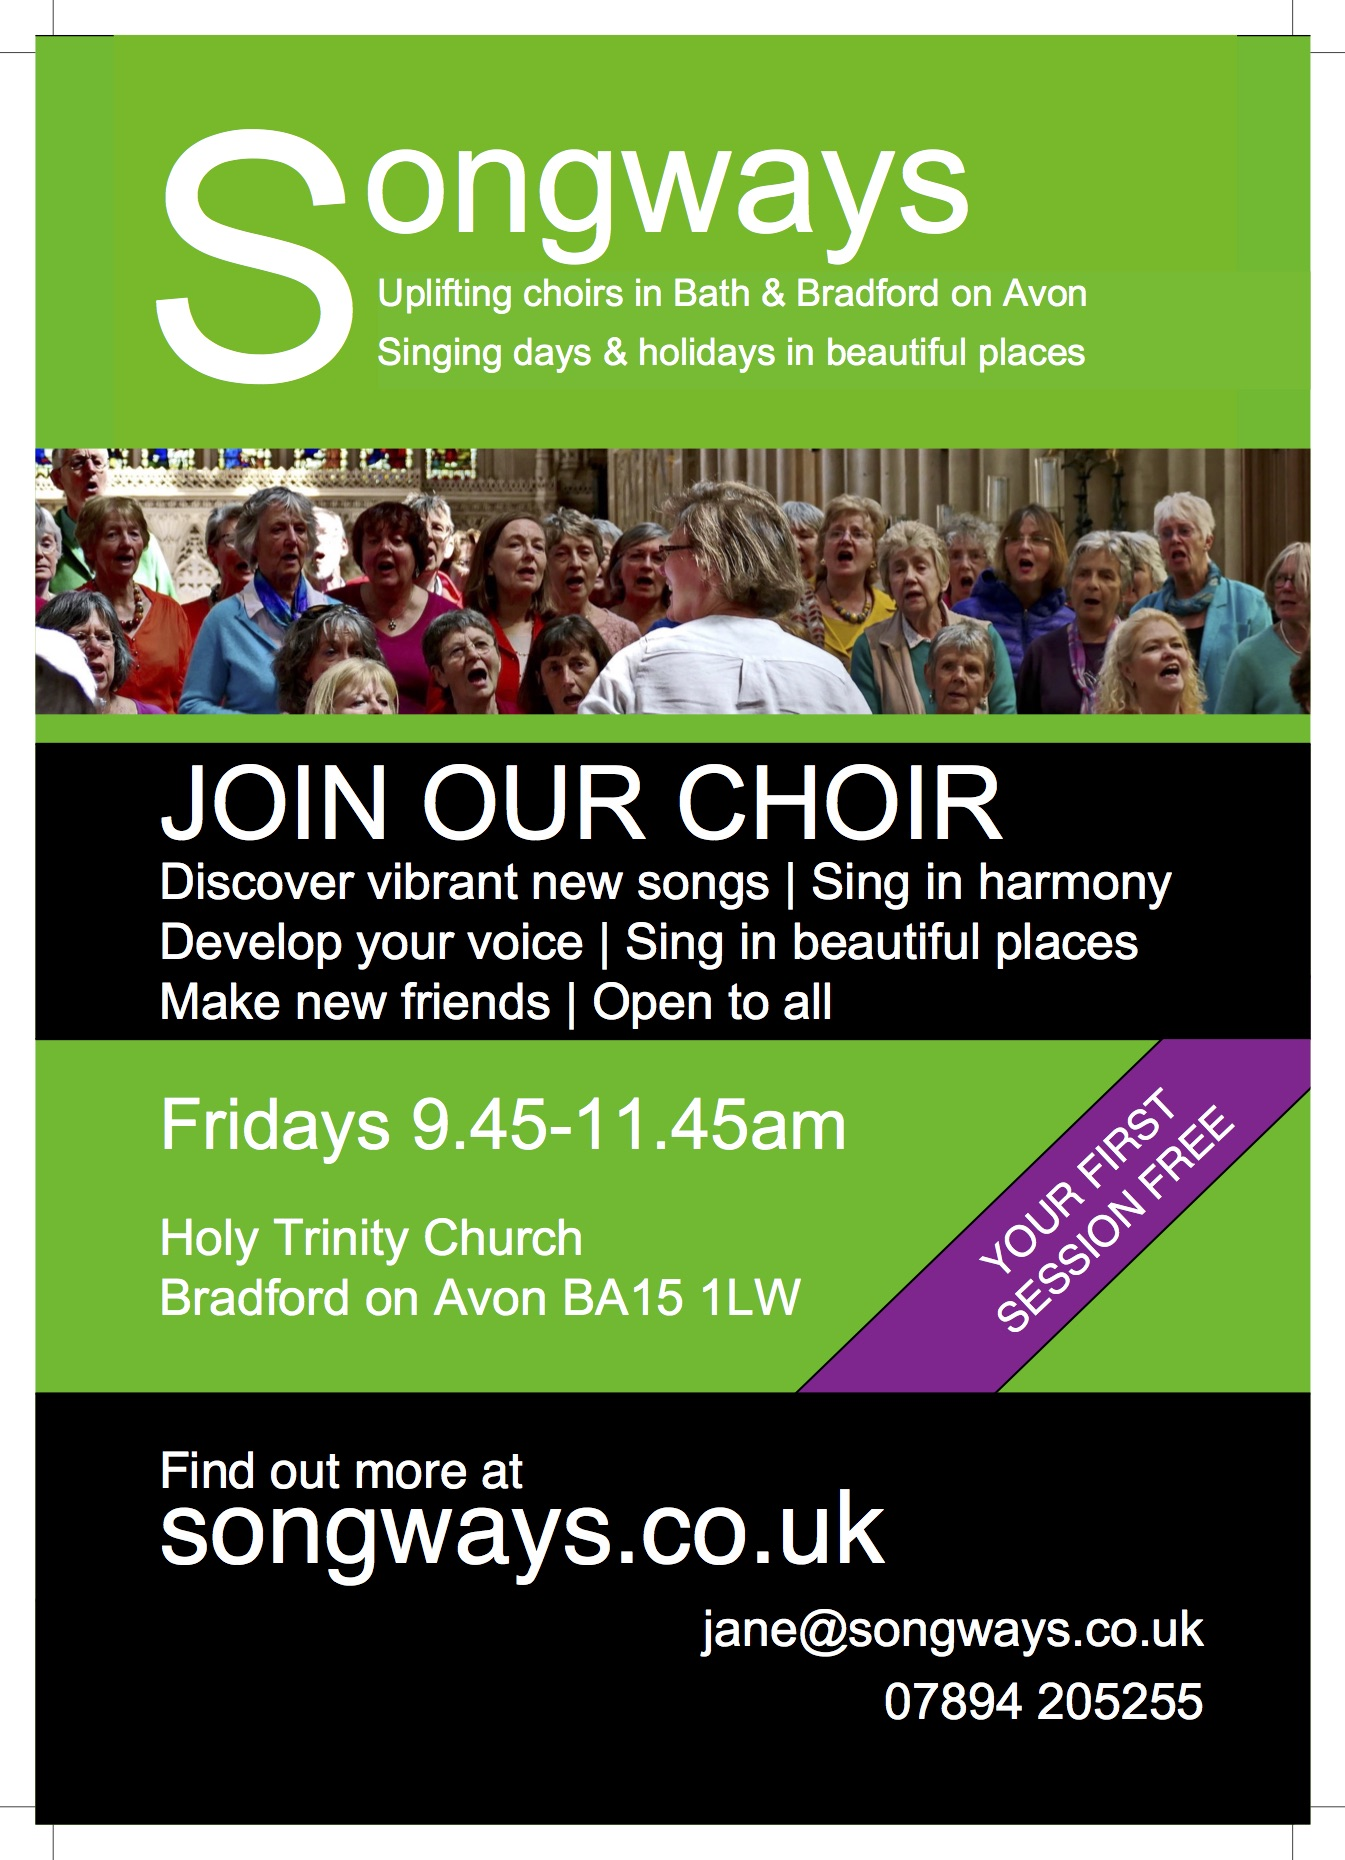 Songways Choir